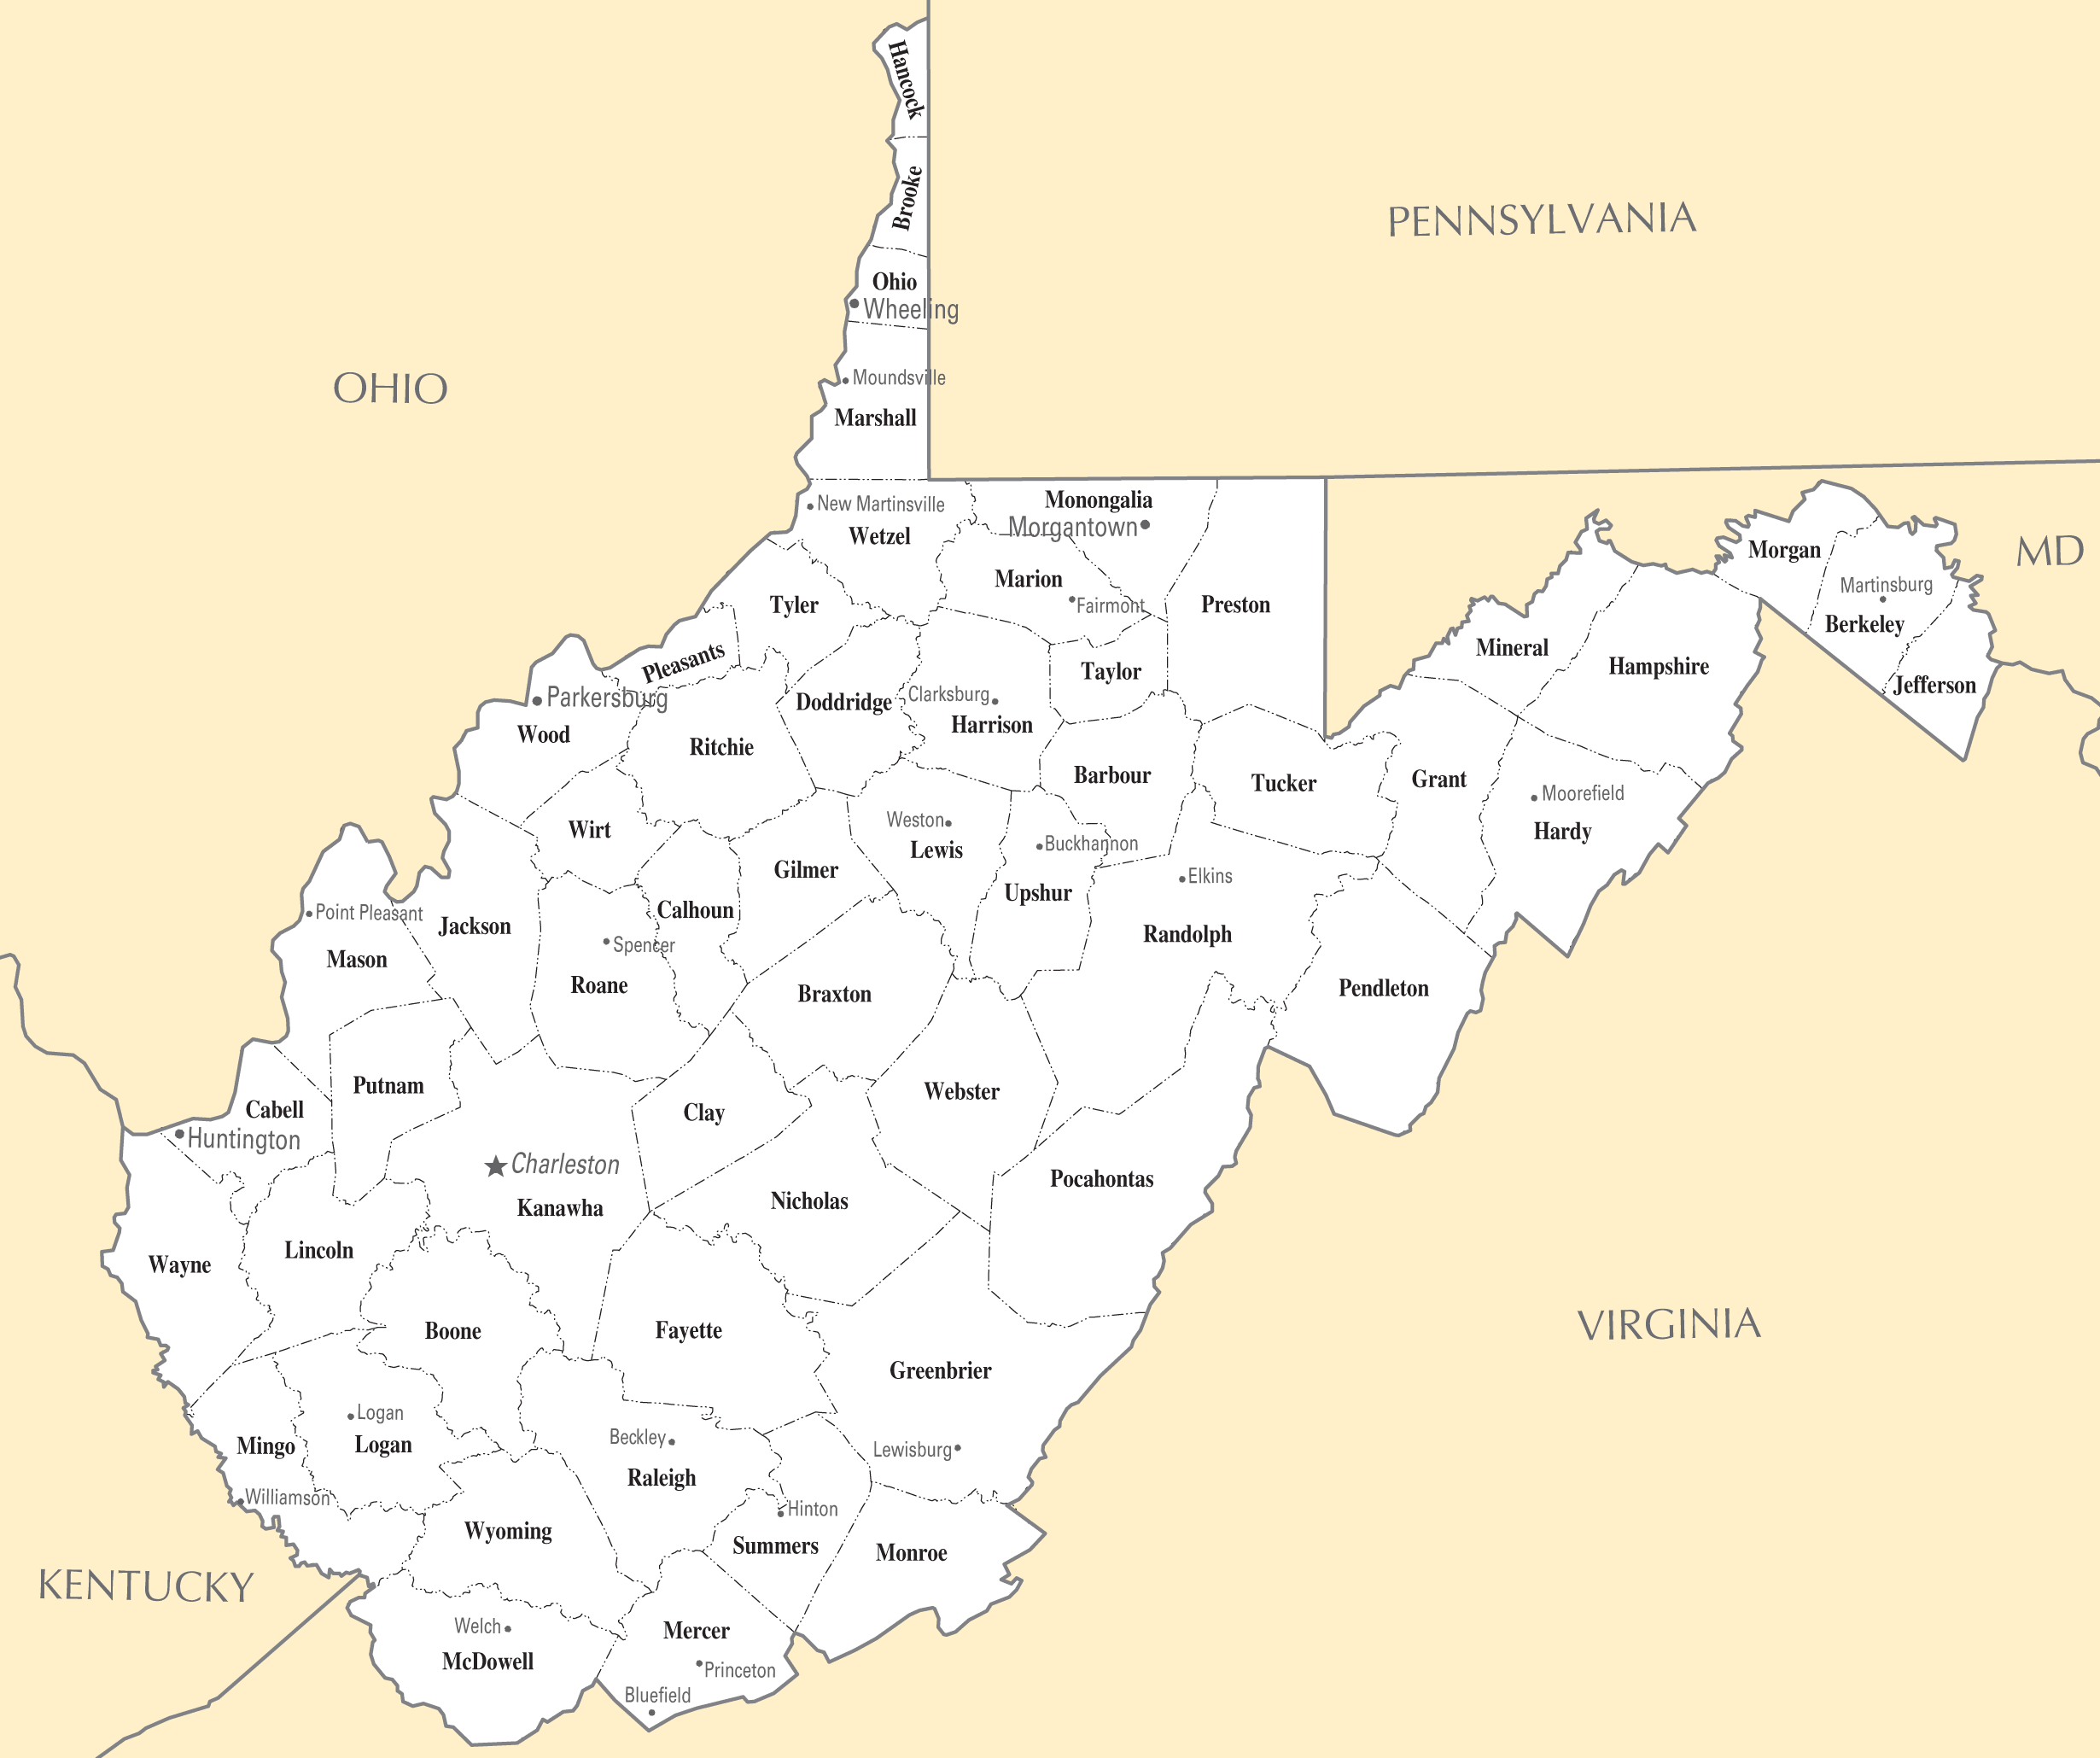 West Virginia Cities And Towns Mapsofnet